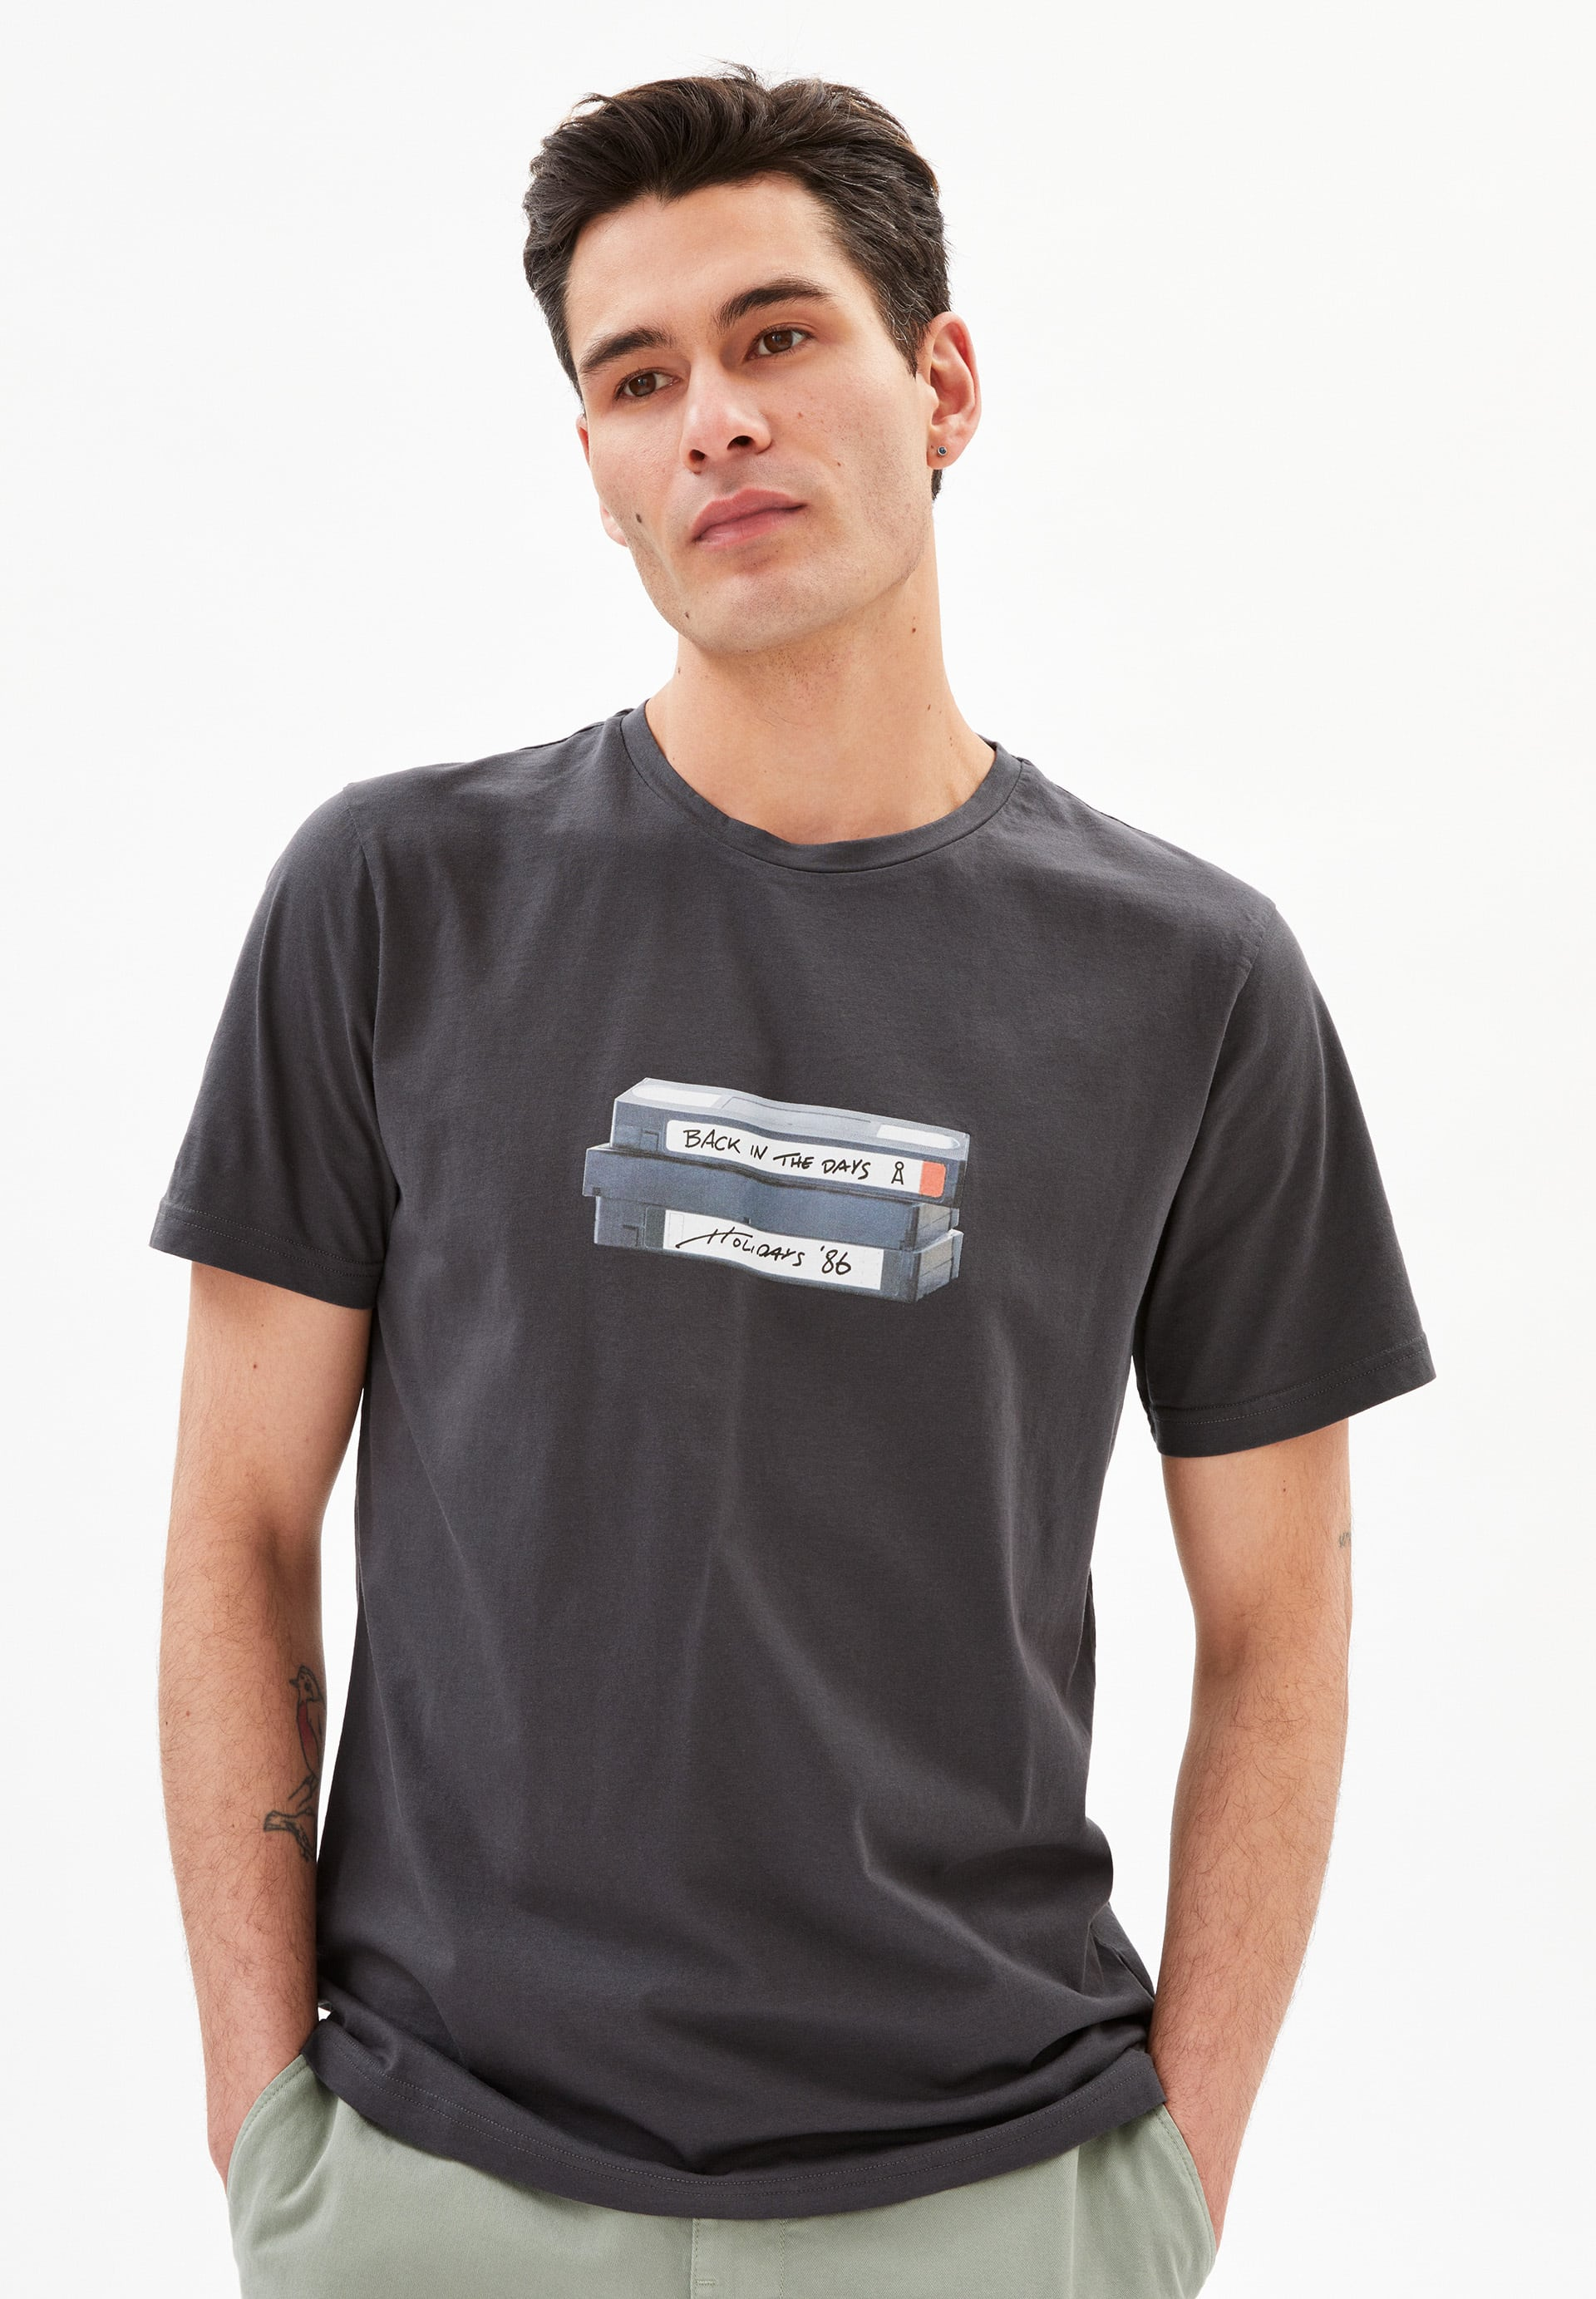 JAAMES VHS T-Shirt made of Organic Cotton